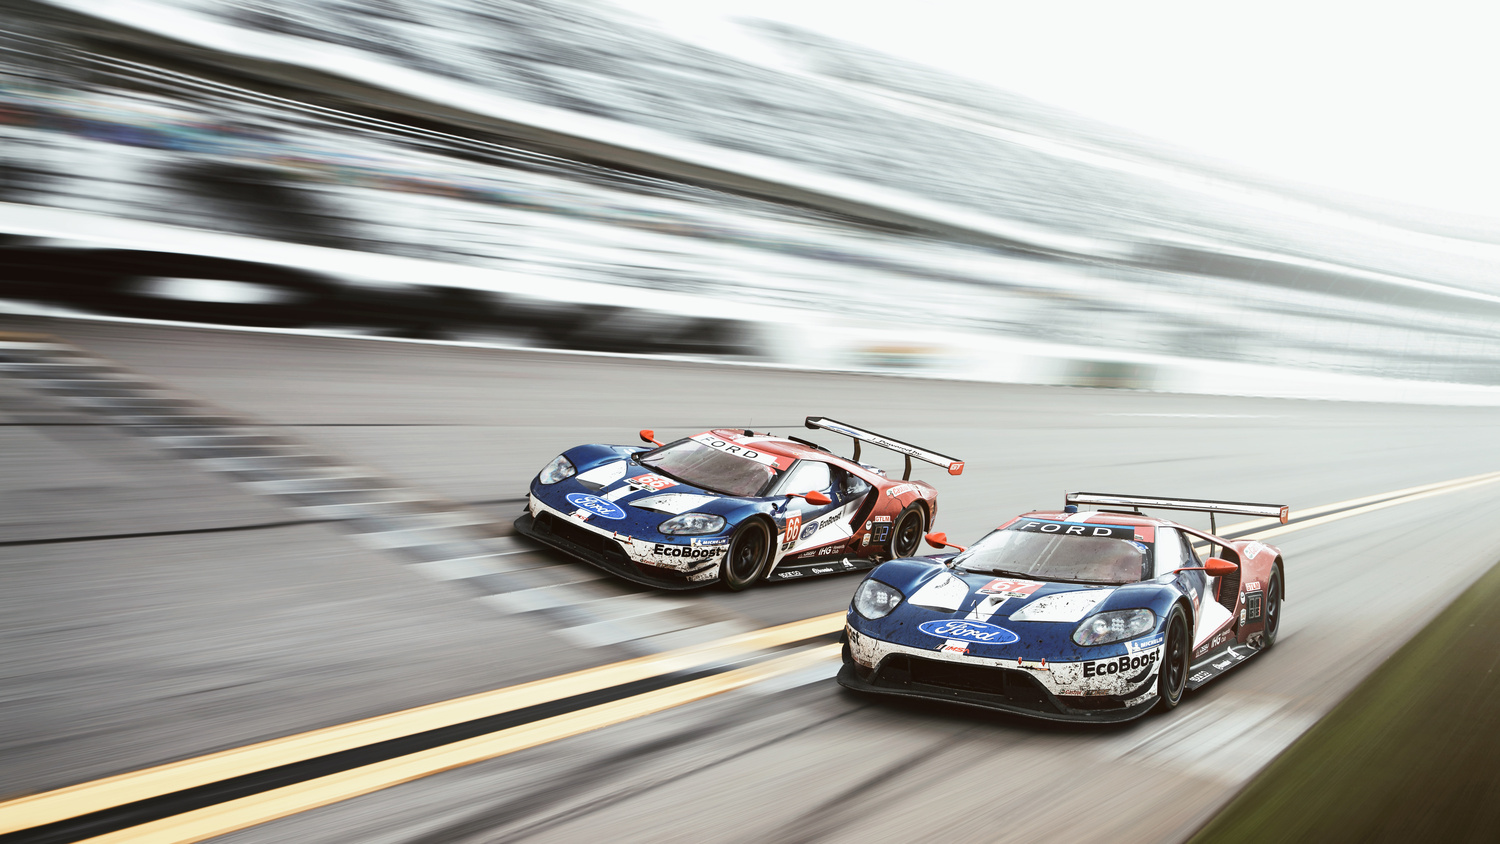 Ford's Rolex 24 at Daytona Victory! by Dominic Mann